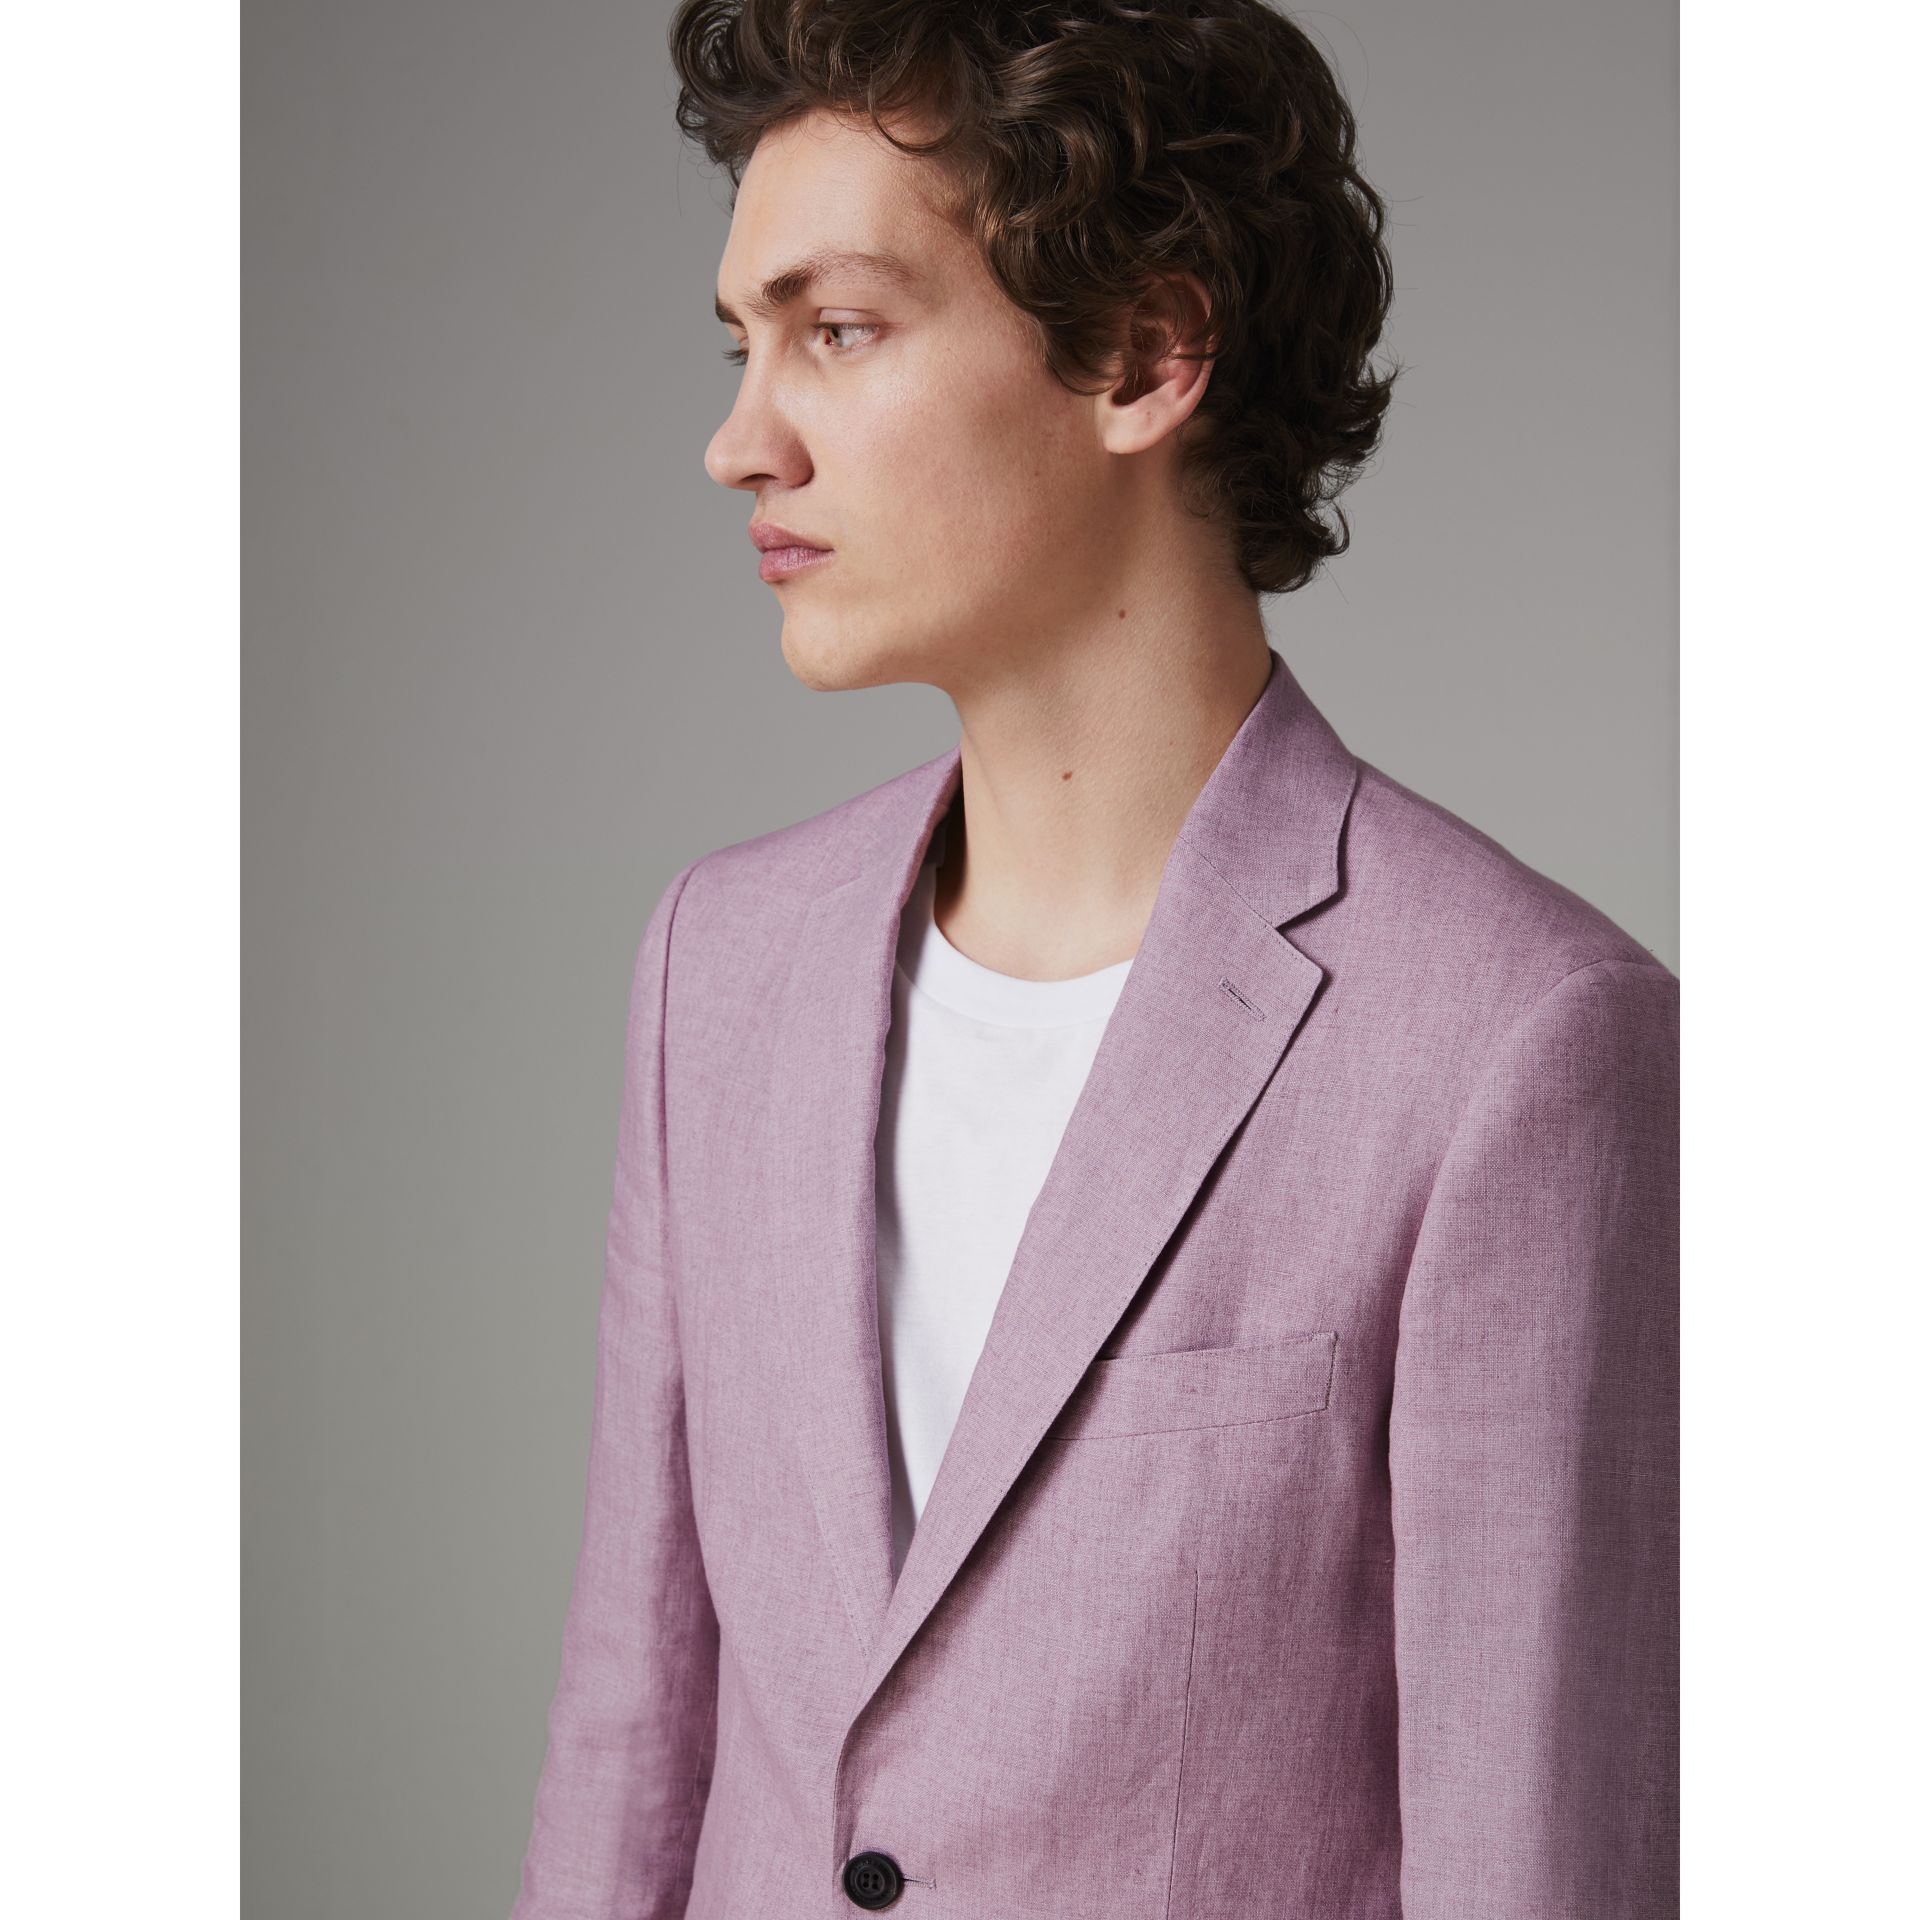 Soho Fit Linen Tailored Jacket in Pink Heather - Men | Burberry Australia - gallery image 1